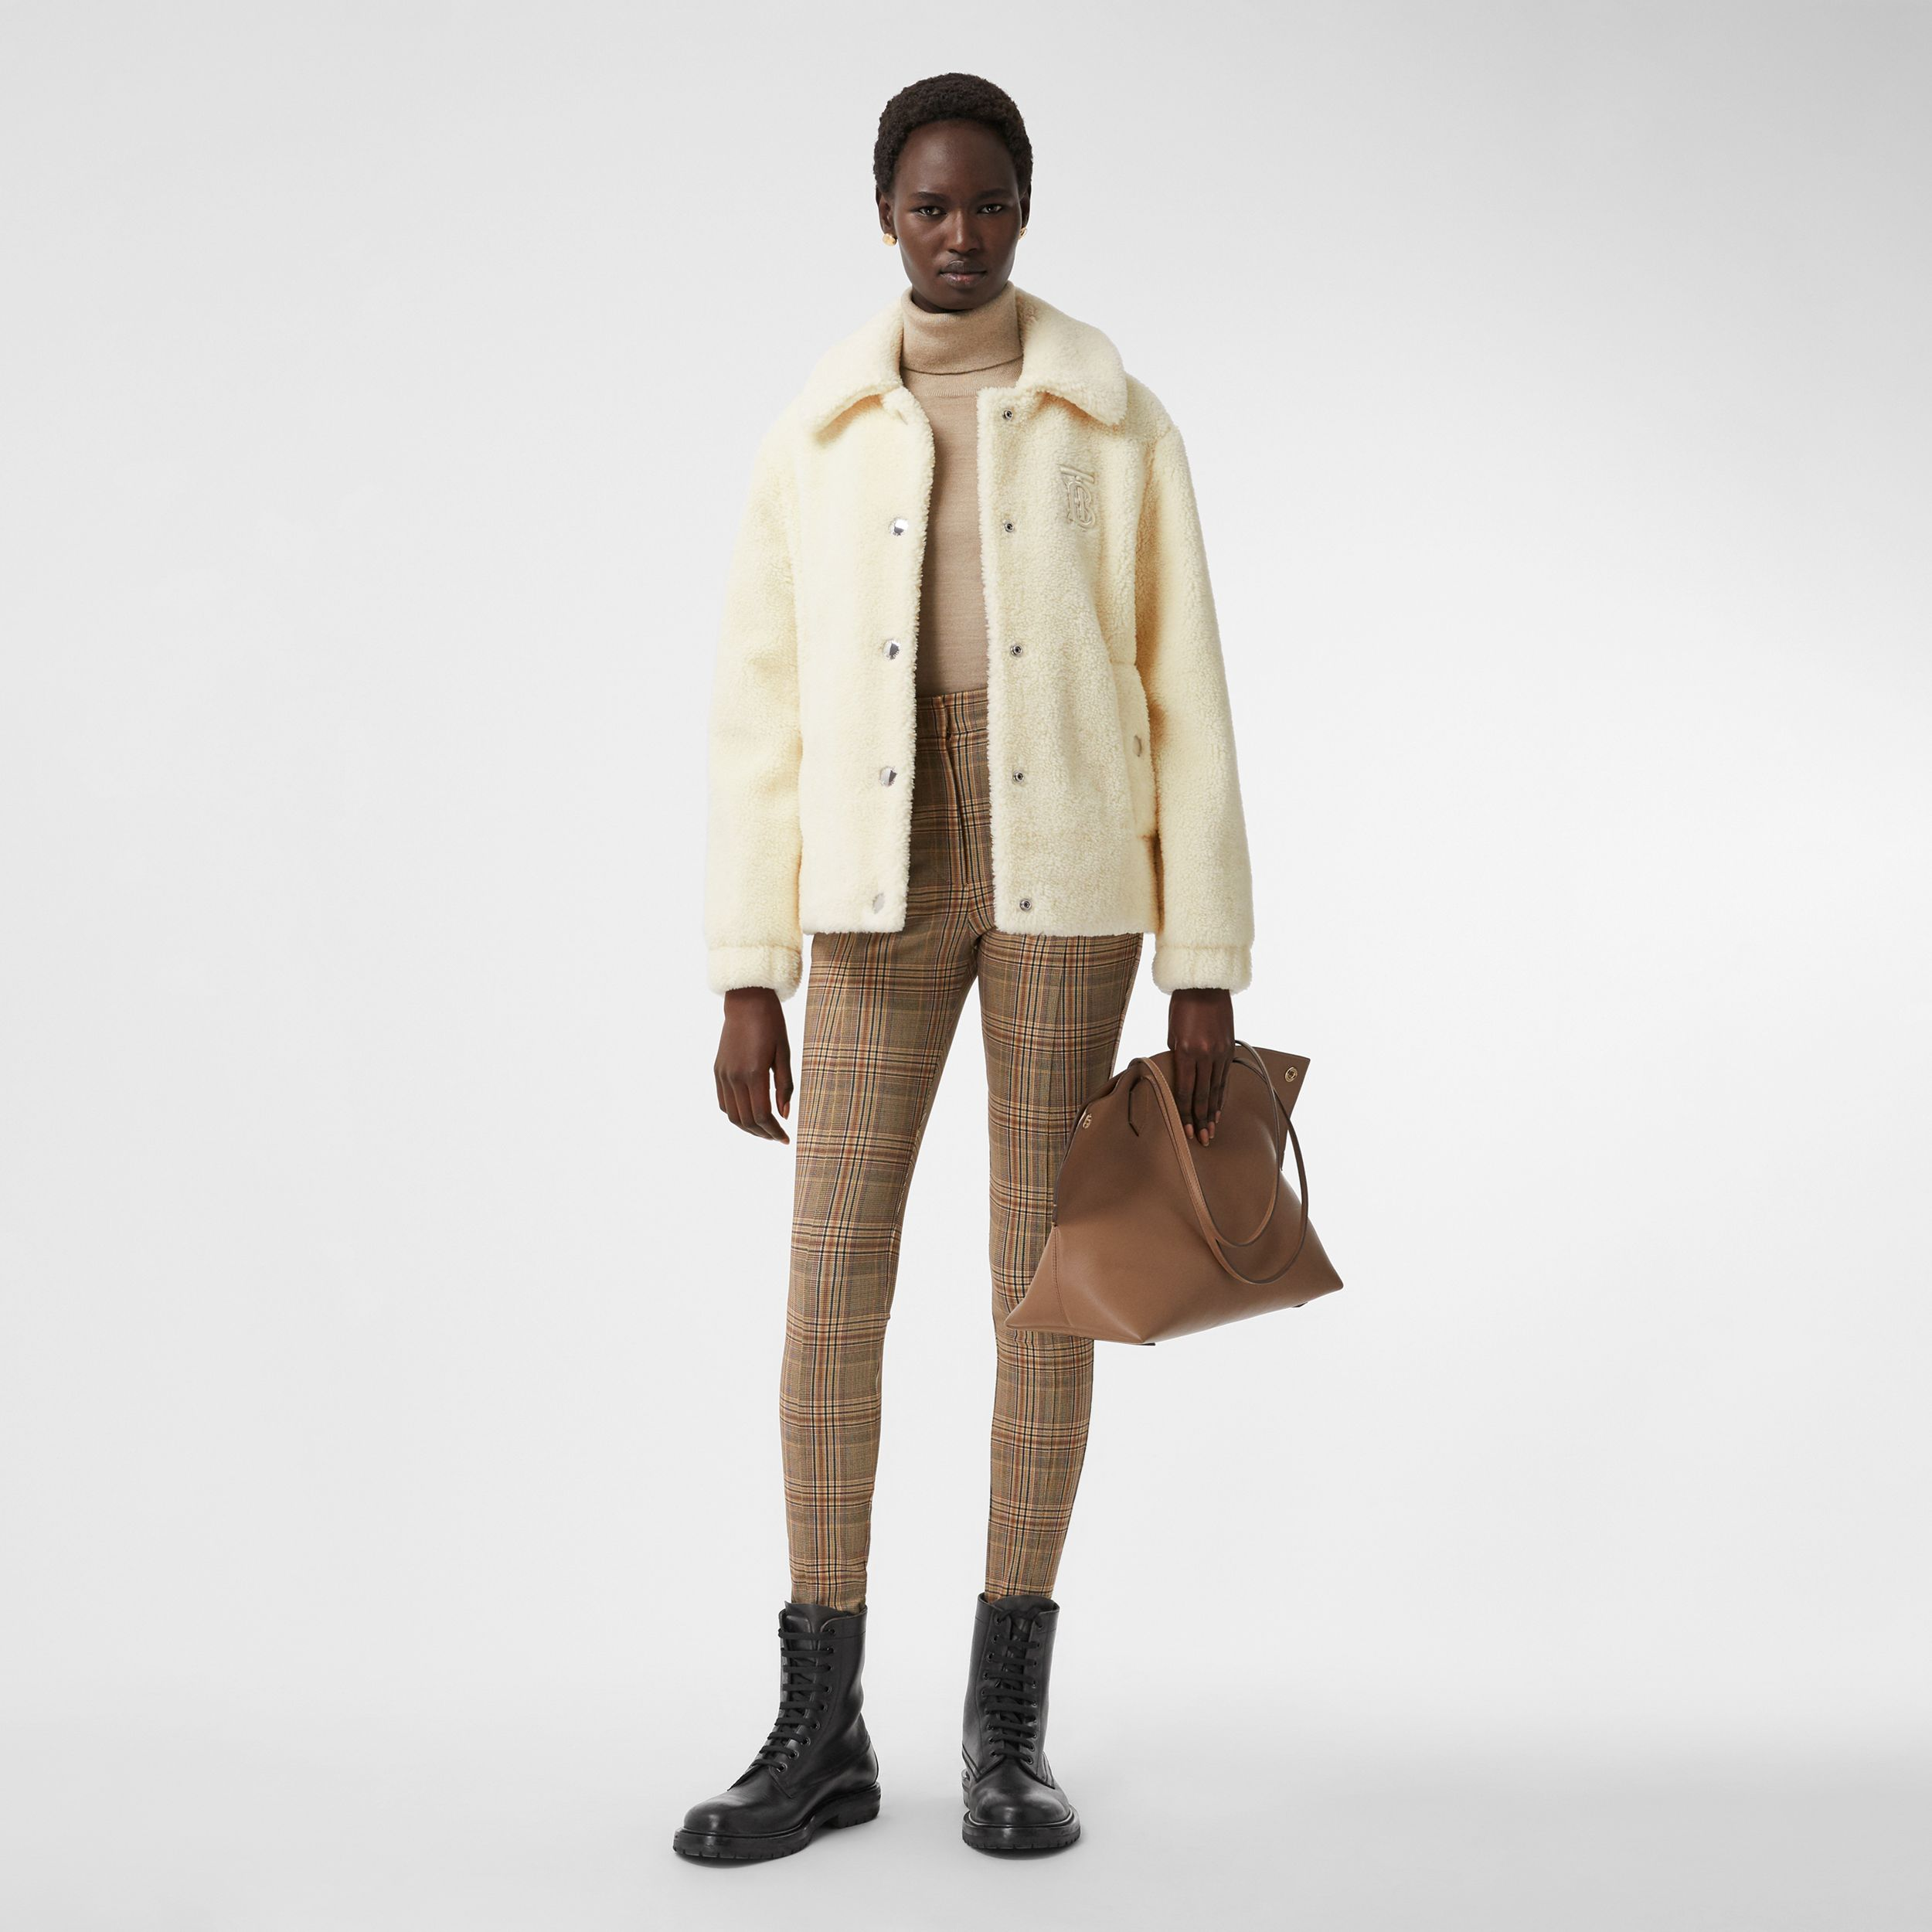 Monogram Motif Fleece Jacket in Ivory - Women | Burberry - 1